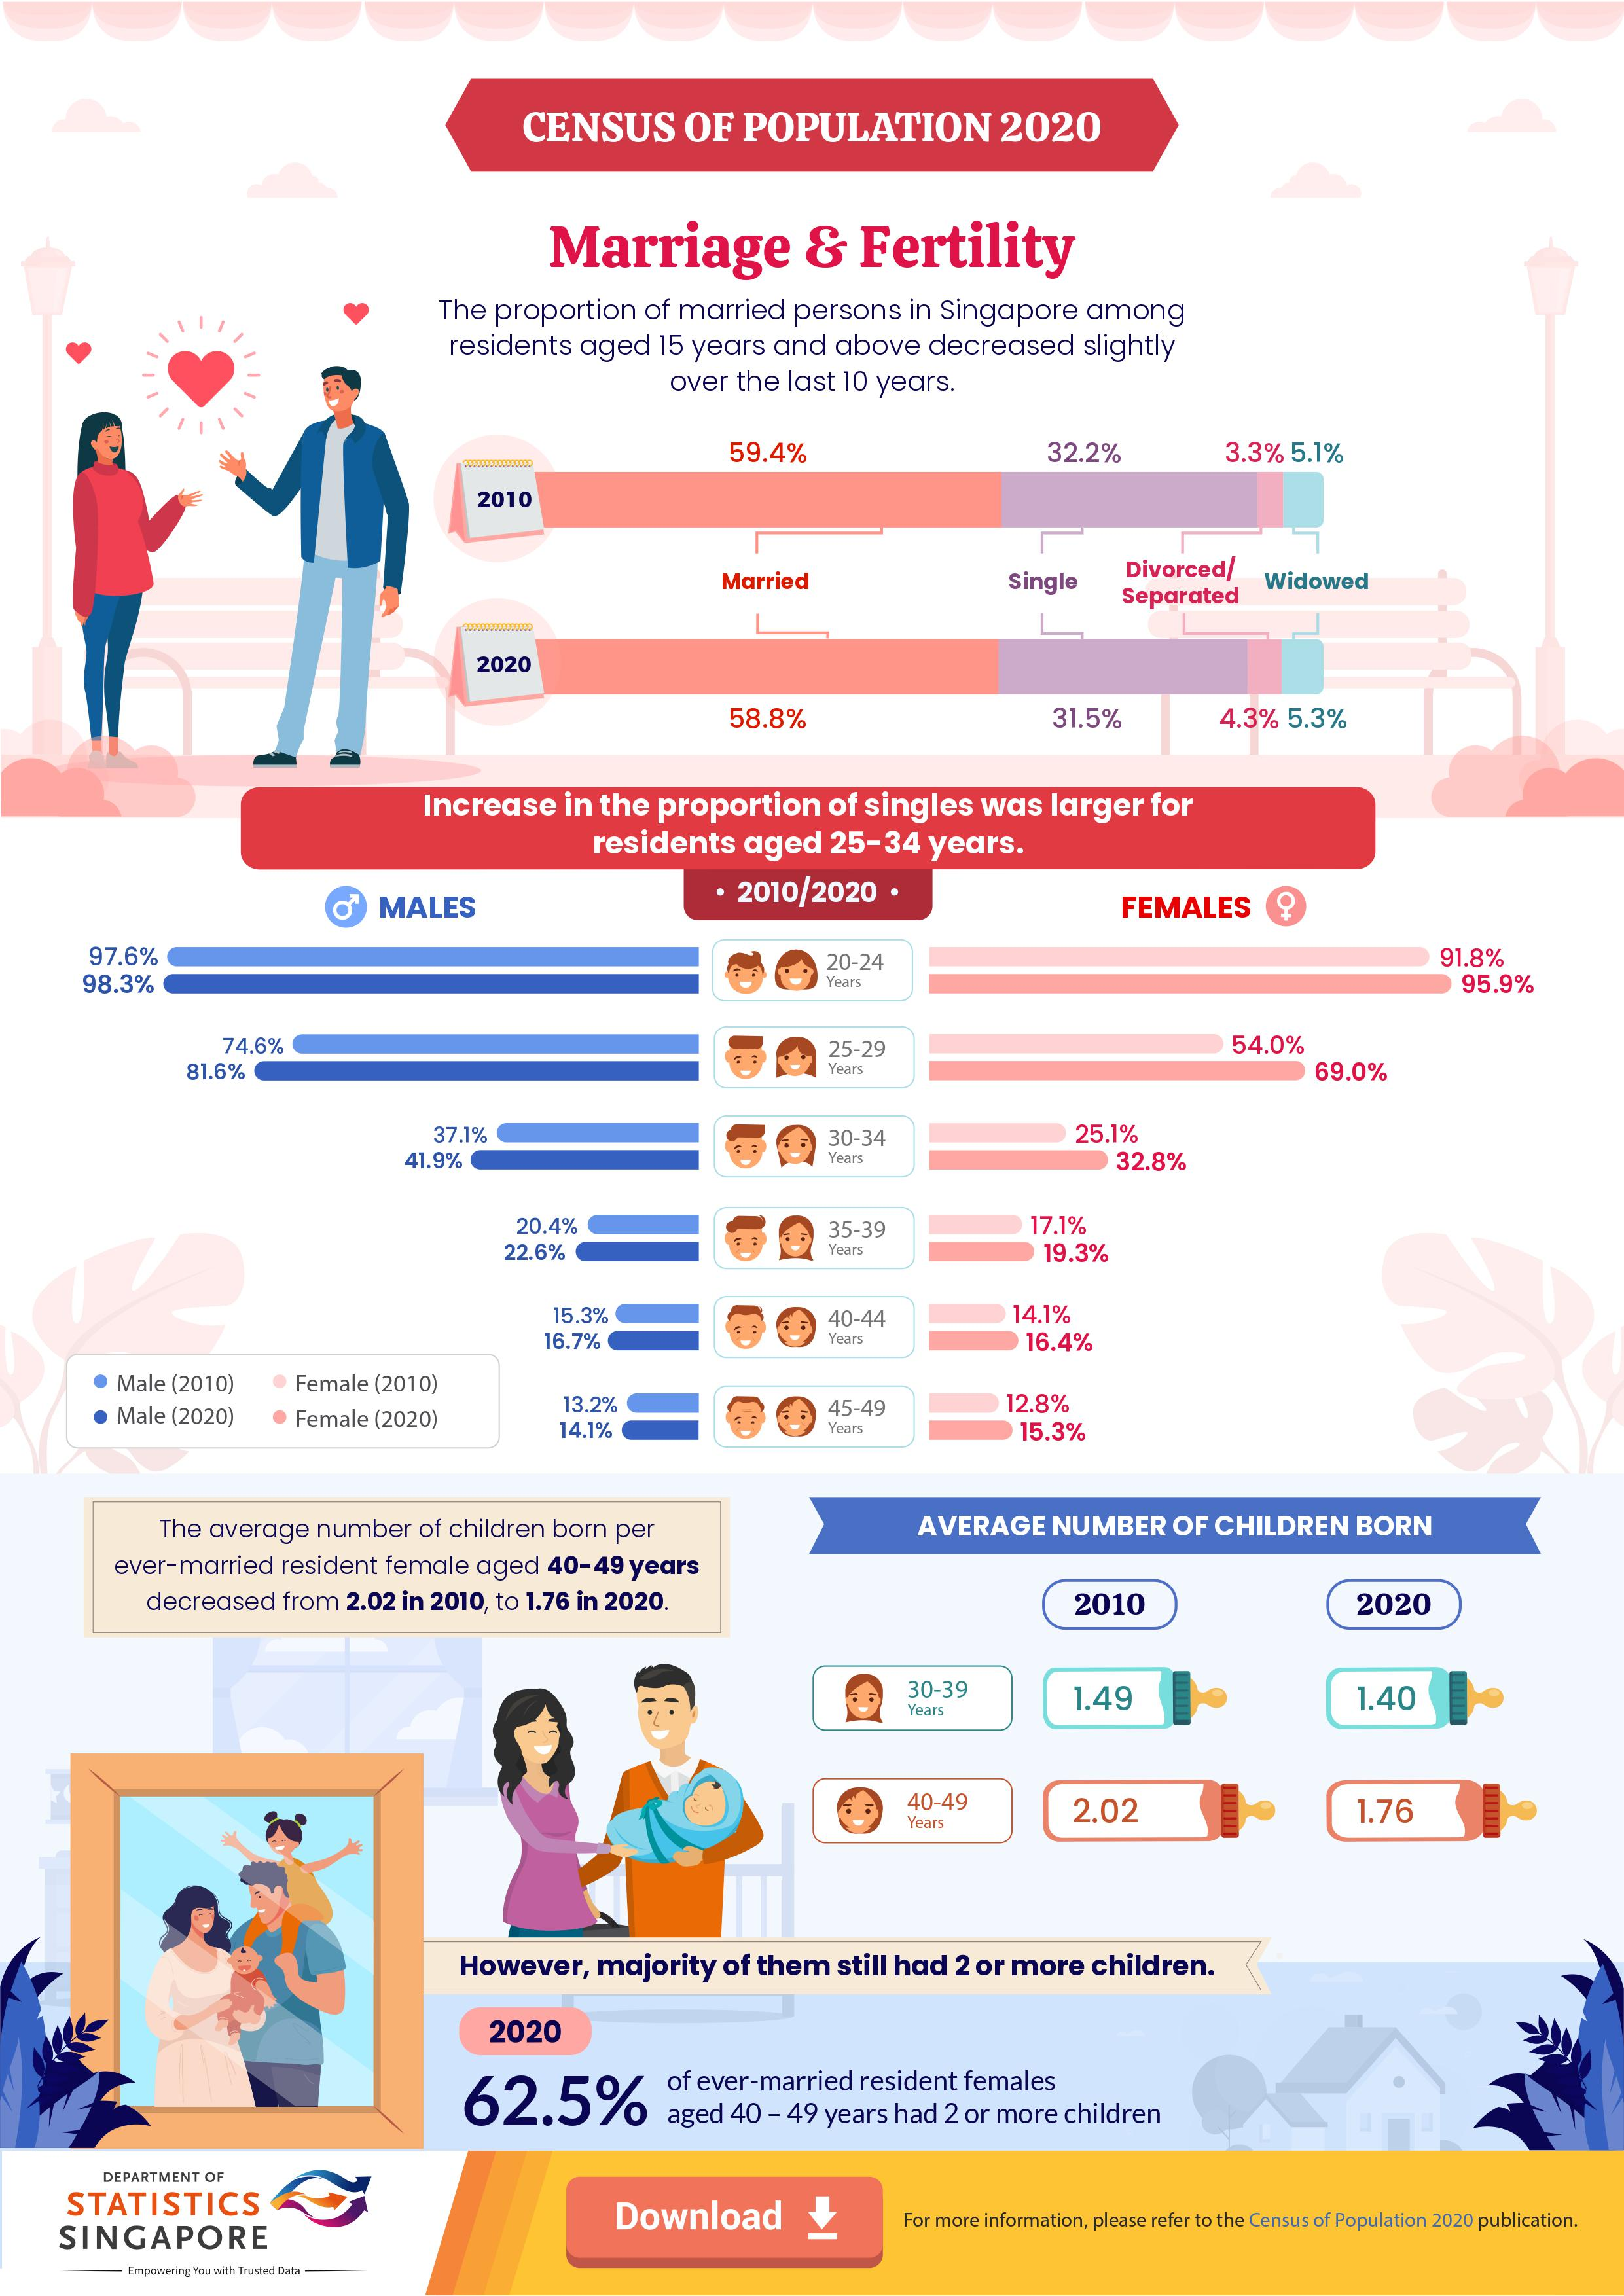 Census of Population 2020 - Marriage & Fertility